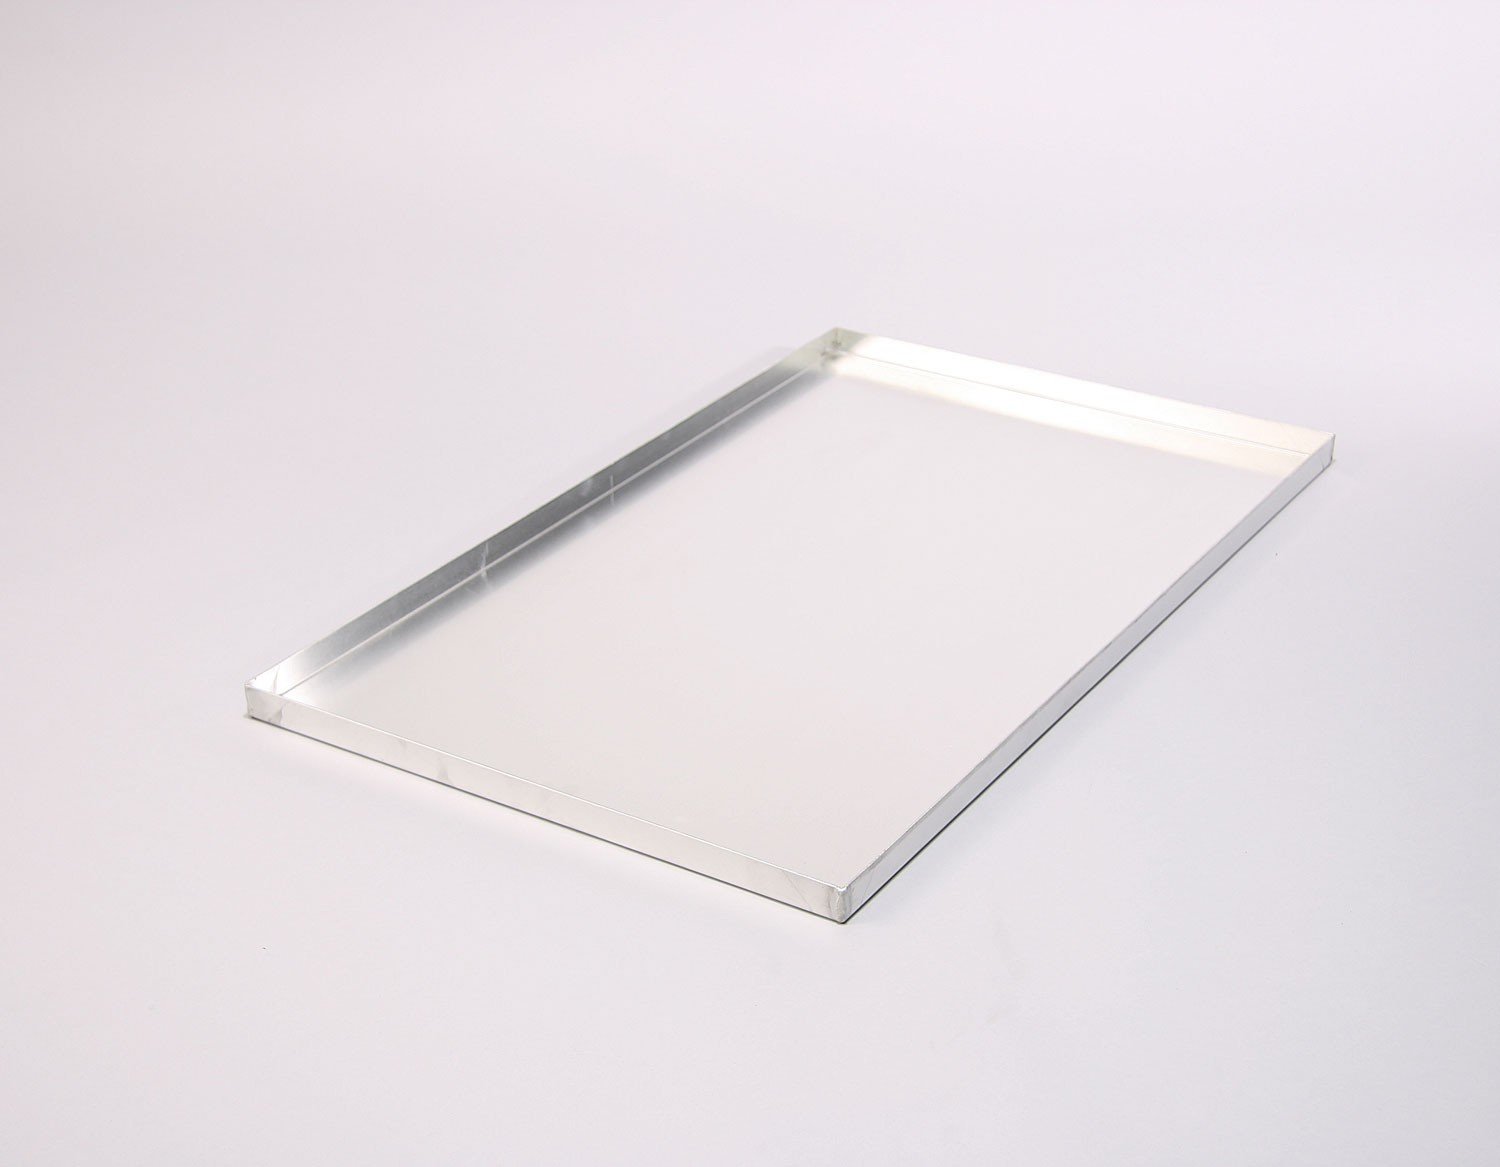 Solid Tray By J Amp K Stainless Solutions Ltd